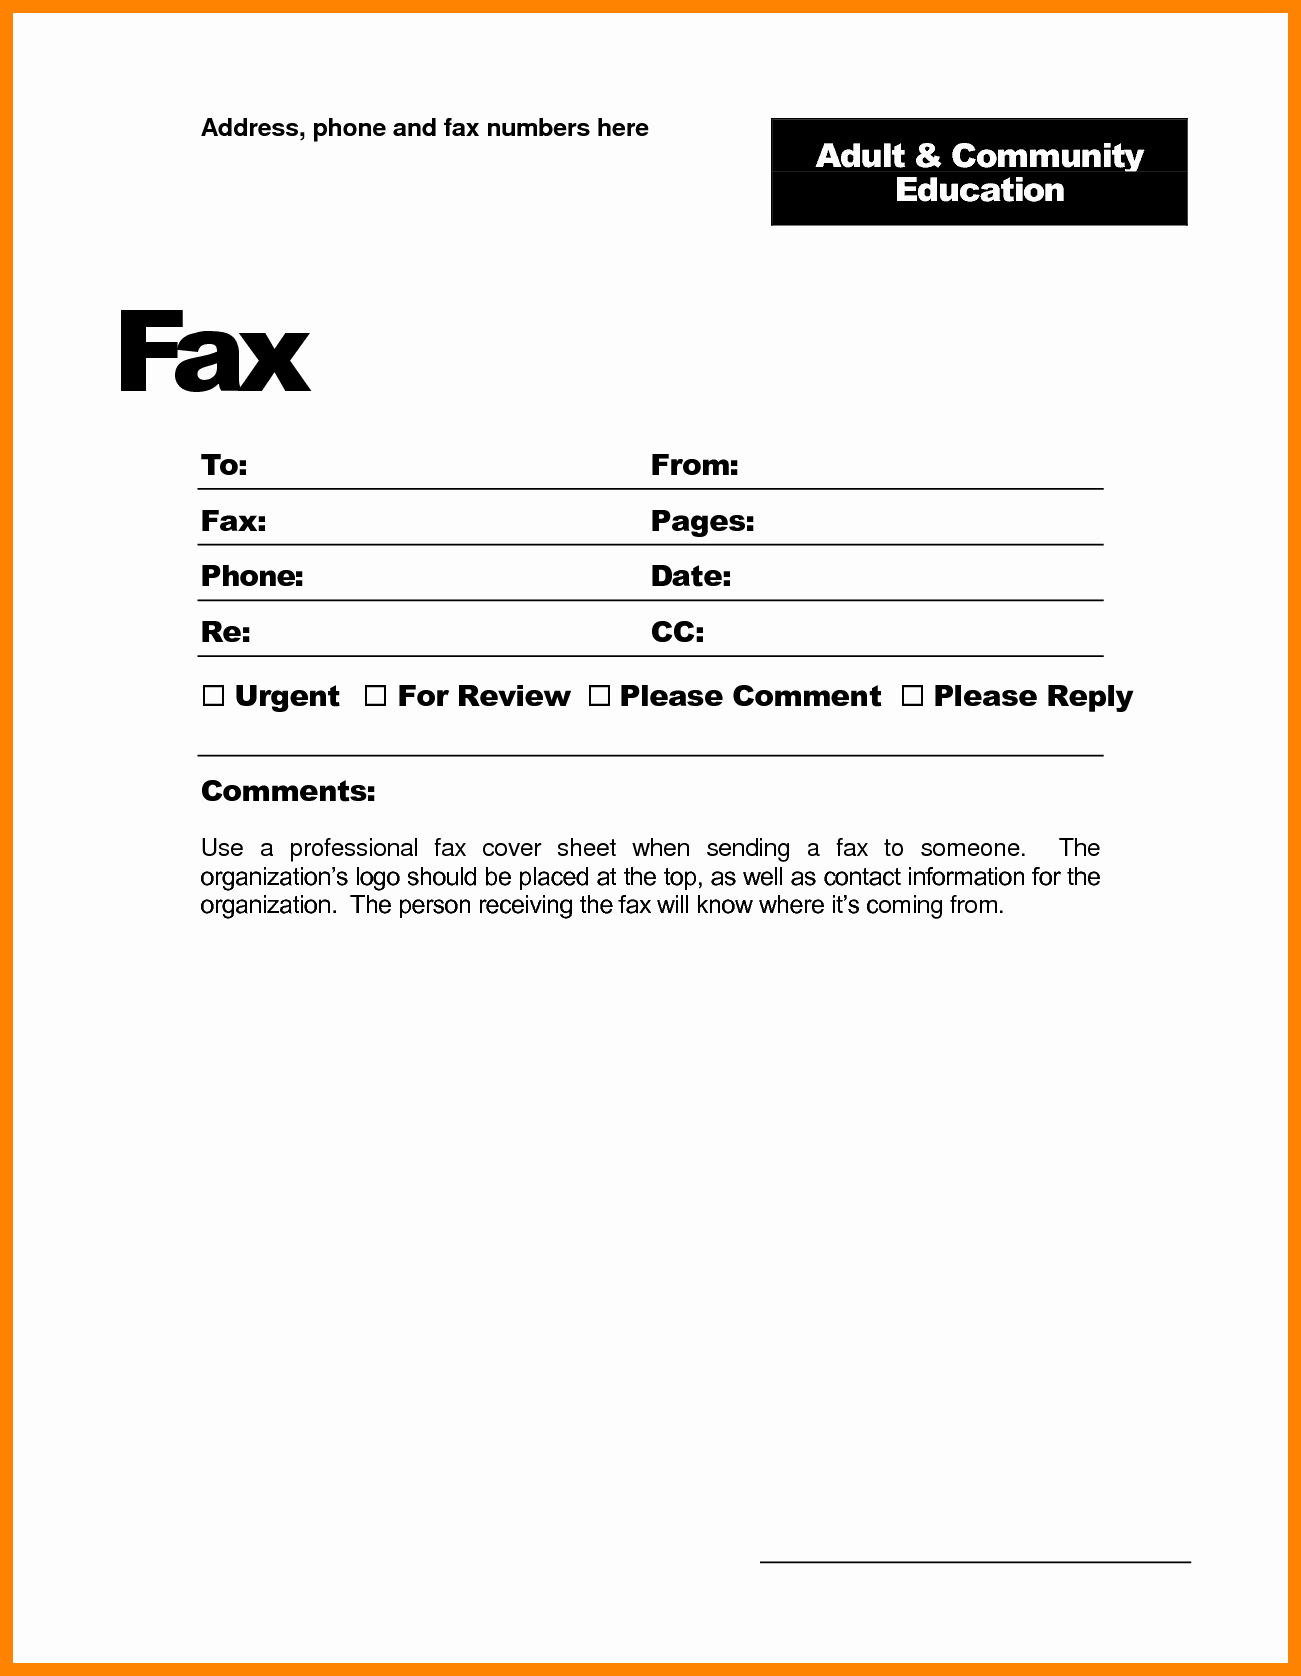 Fax Cover Sheet Word Document Beautiful Fax Cover Template Word Portablegasgrillweber